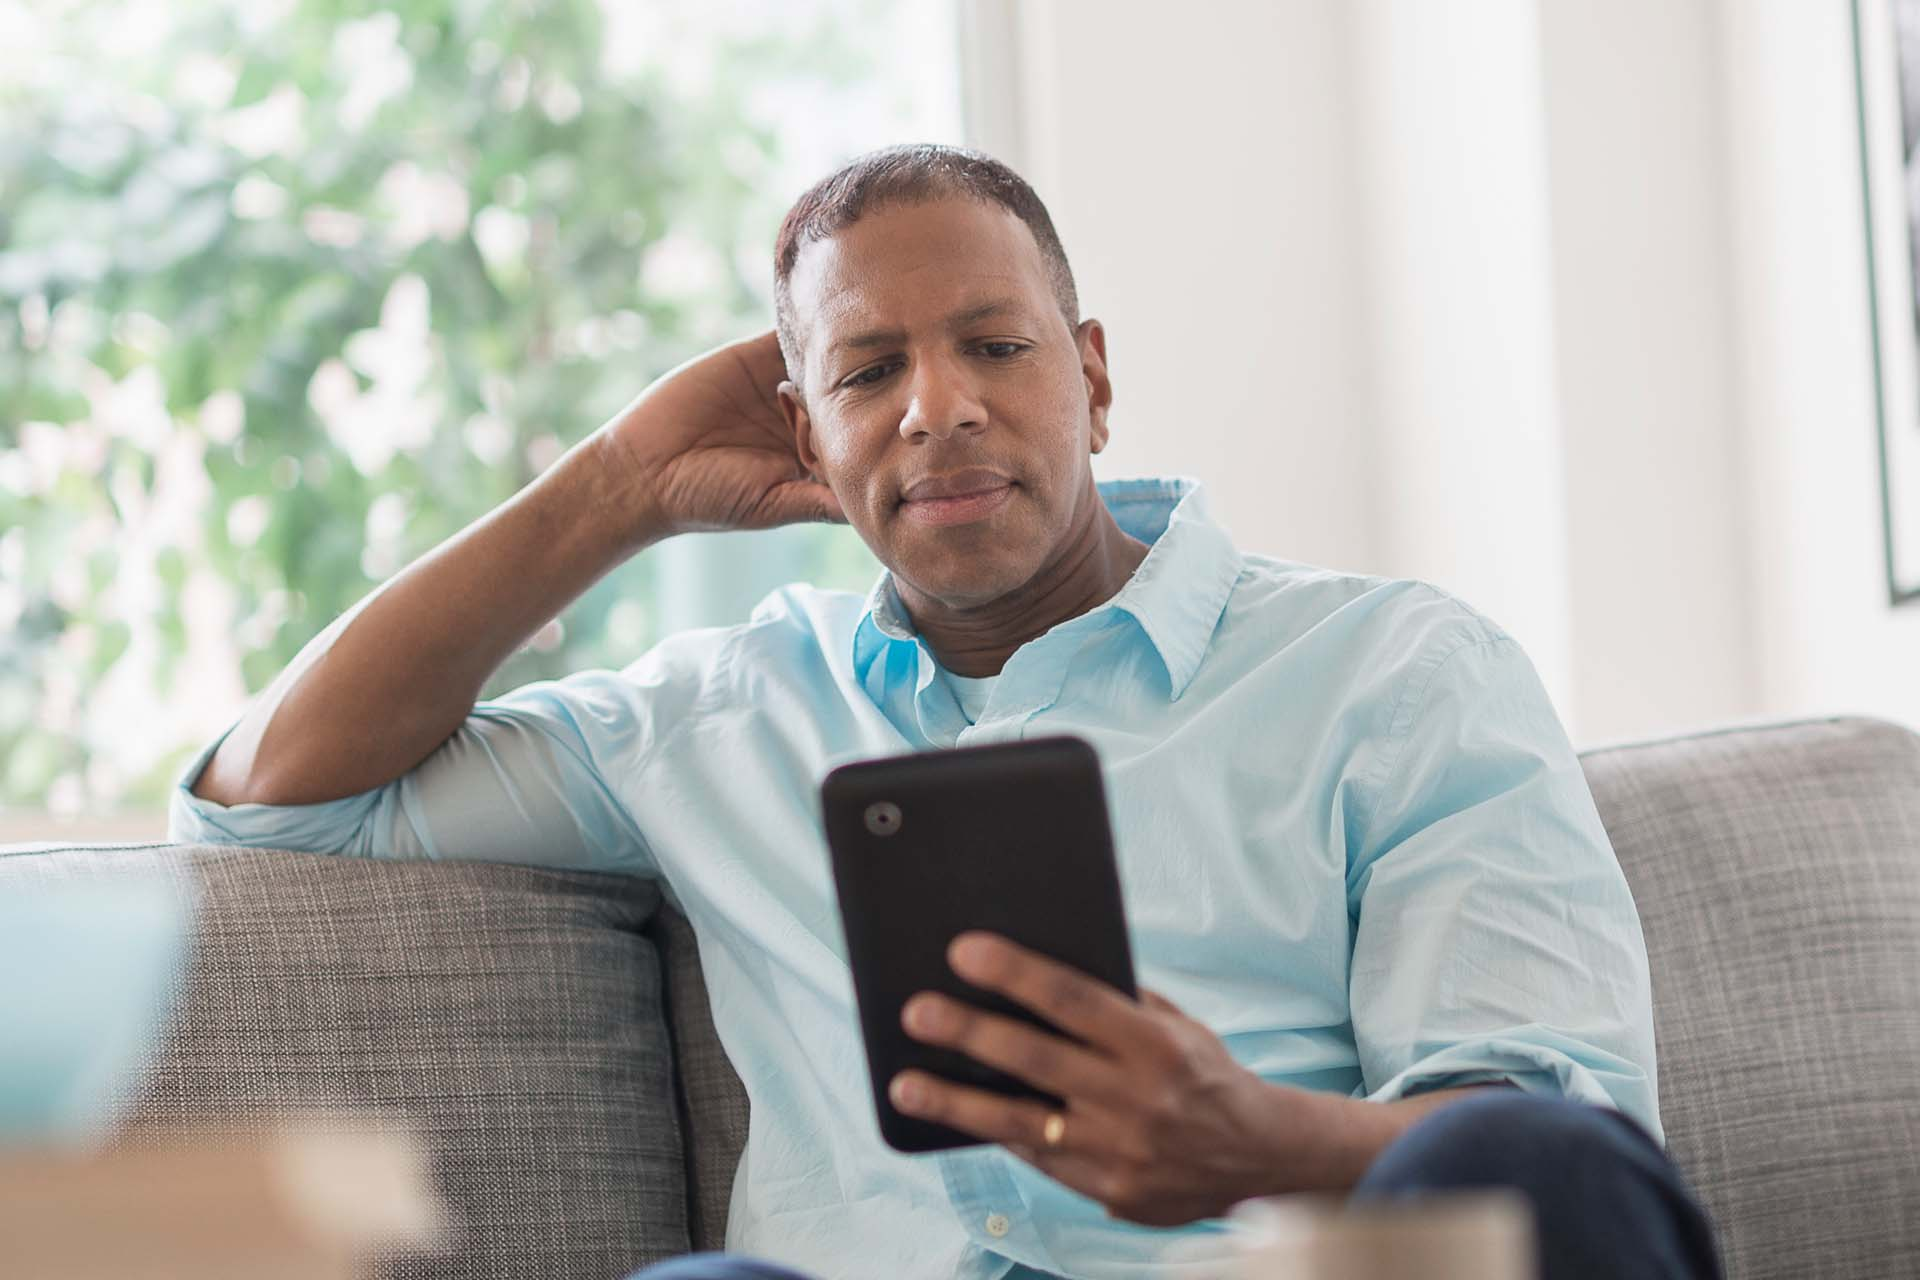 male on couch using tablet